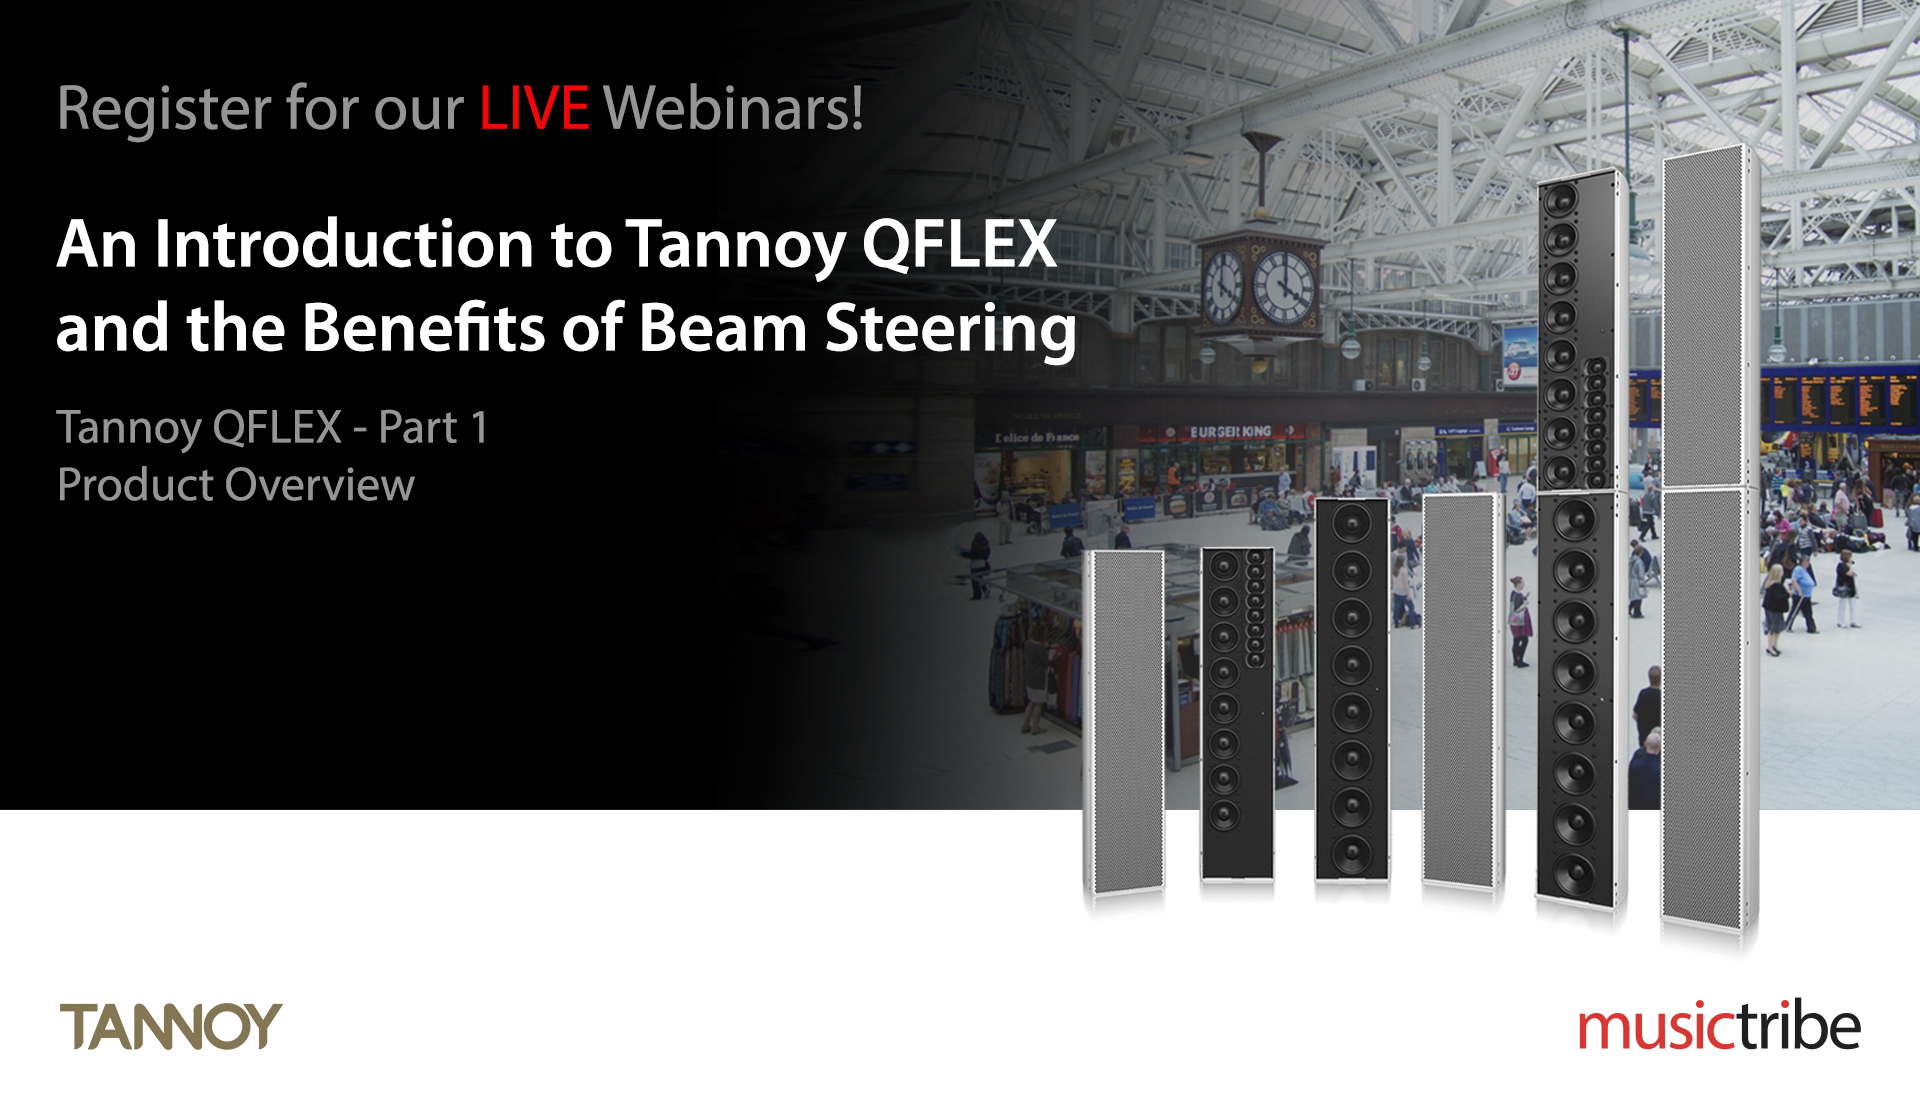 Tannoy LIVE Webinar: An Introduction to Tannoy QFLEX and the Benefits of Beam Steering (Part 1)